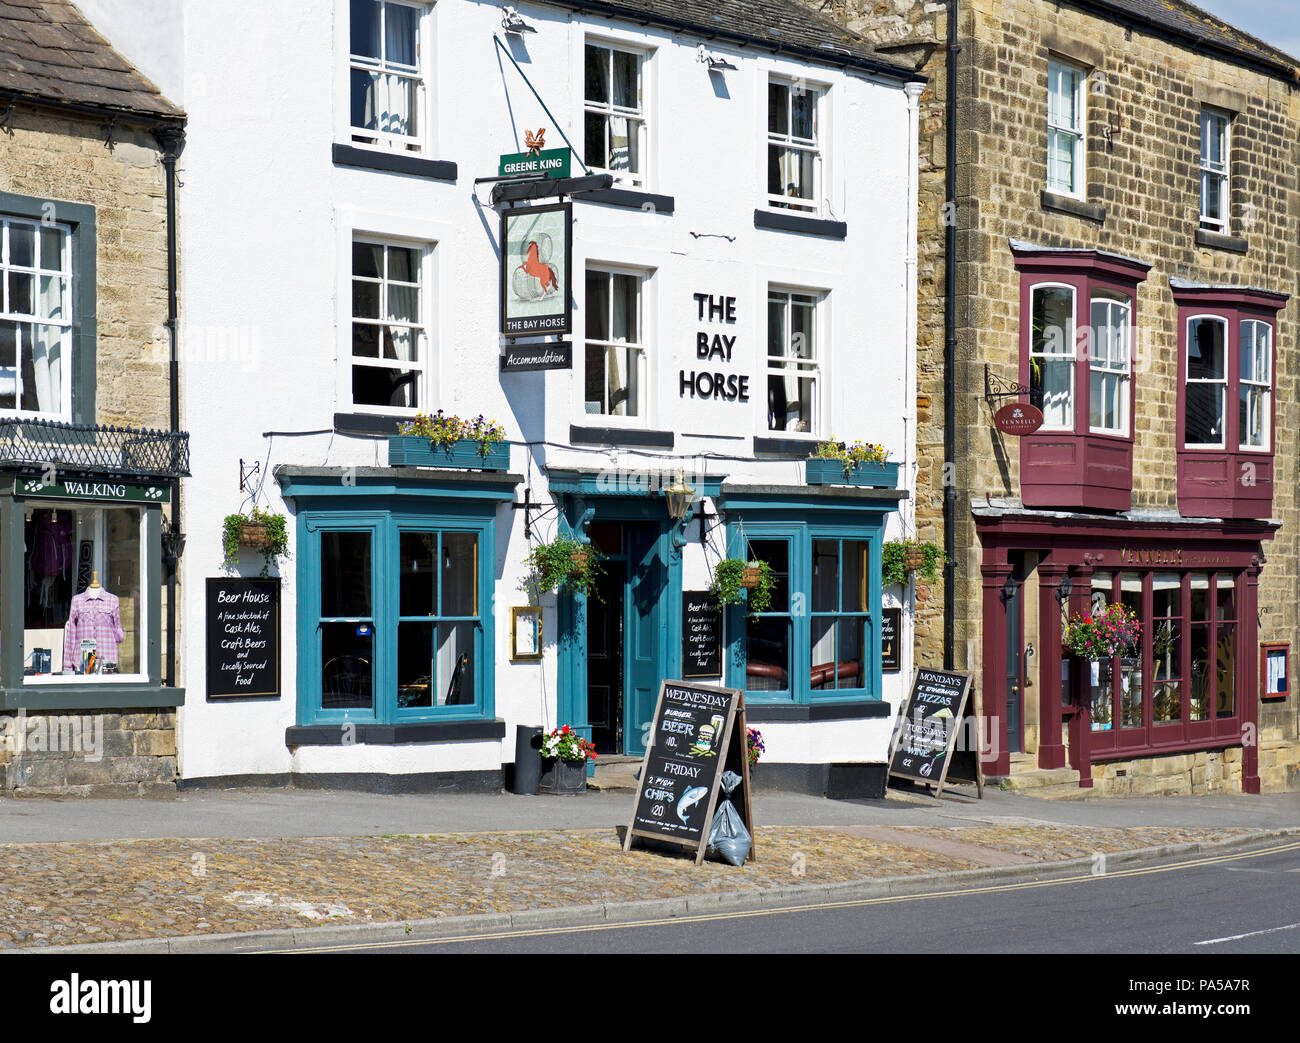 The Bay Horse pub, Masham, North Yorkshire, England UK - Stock Image